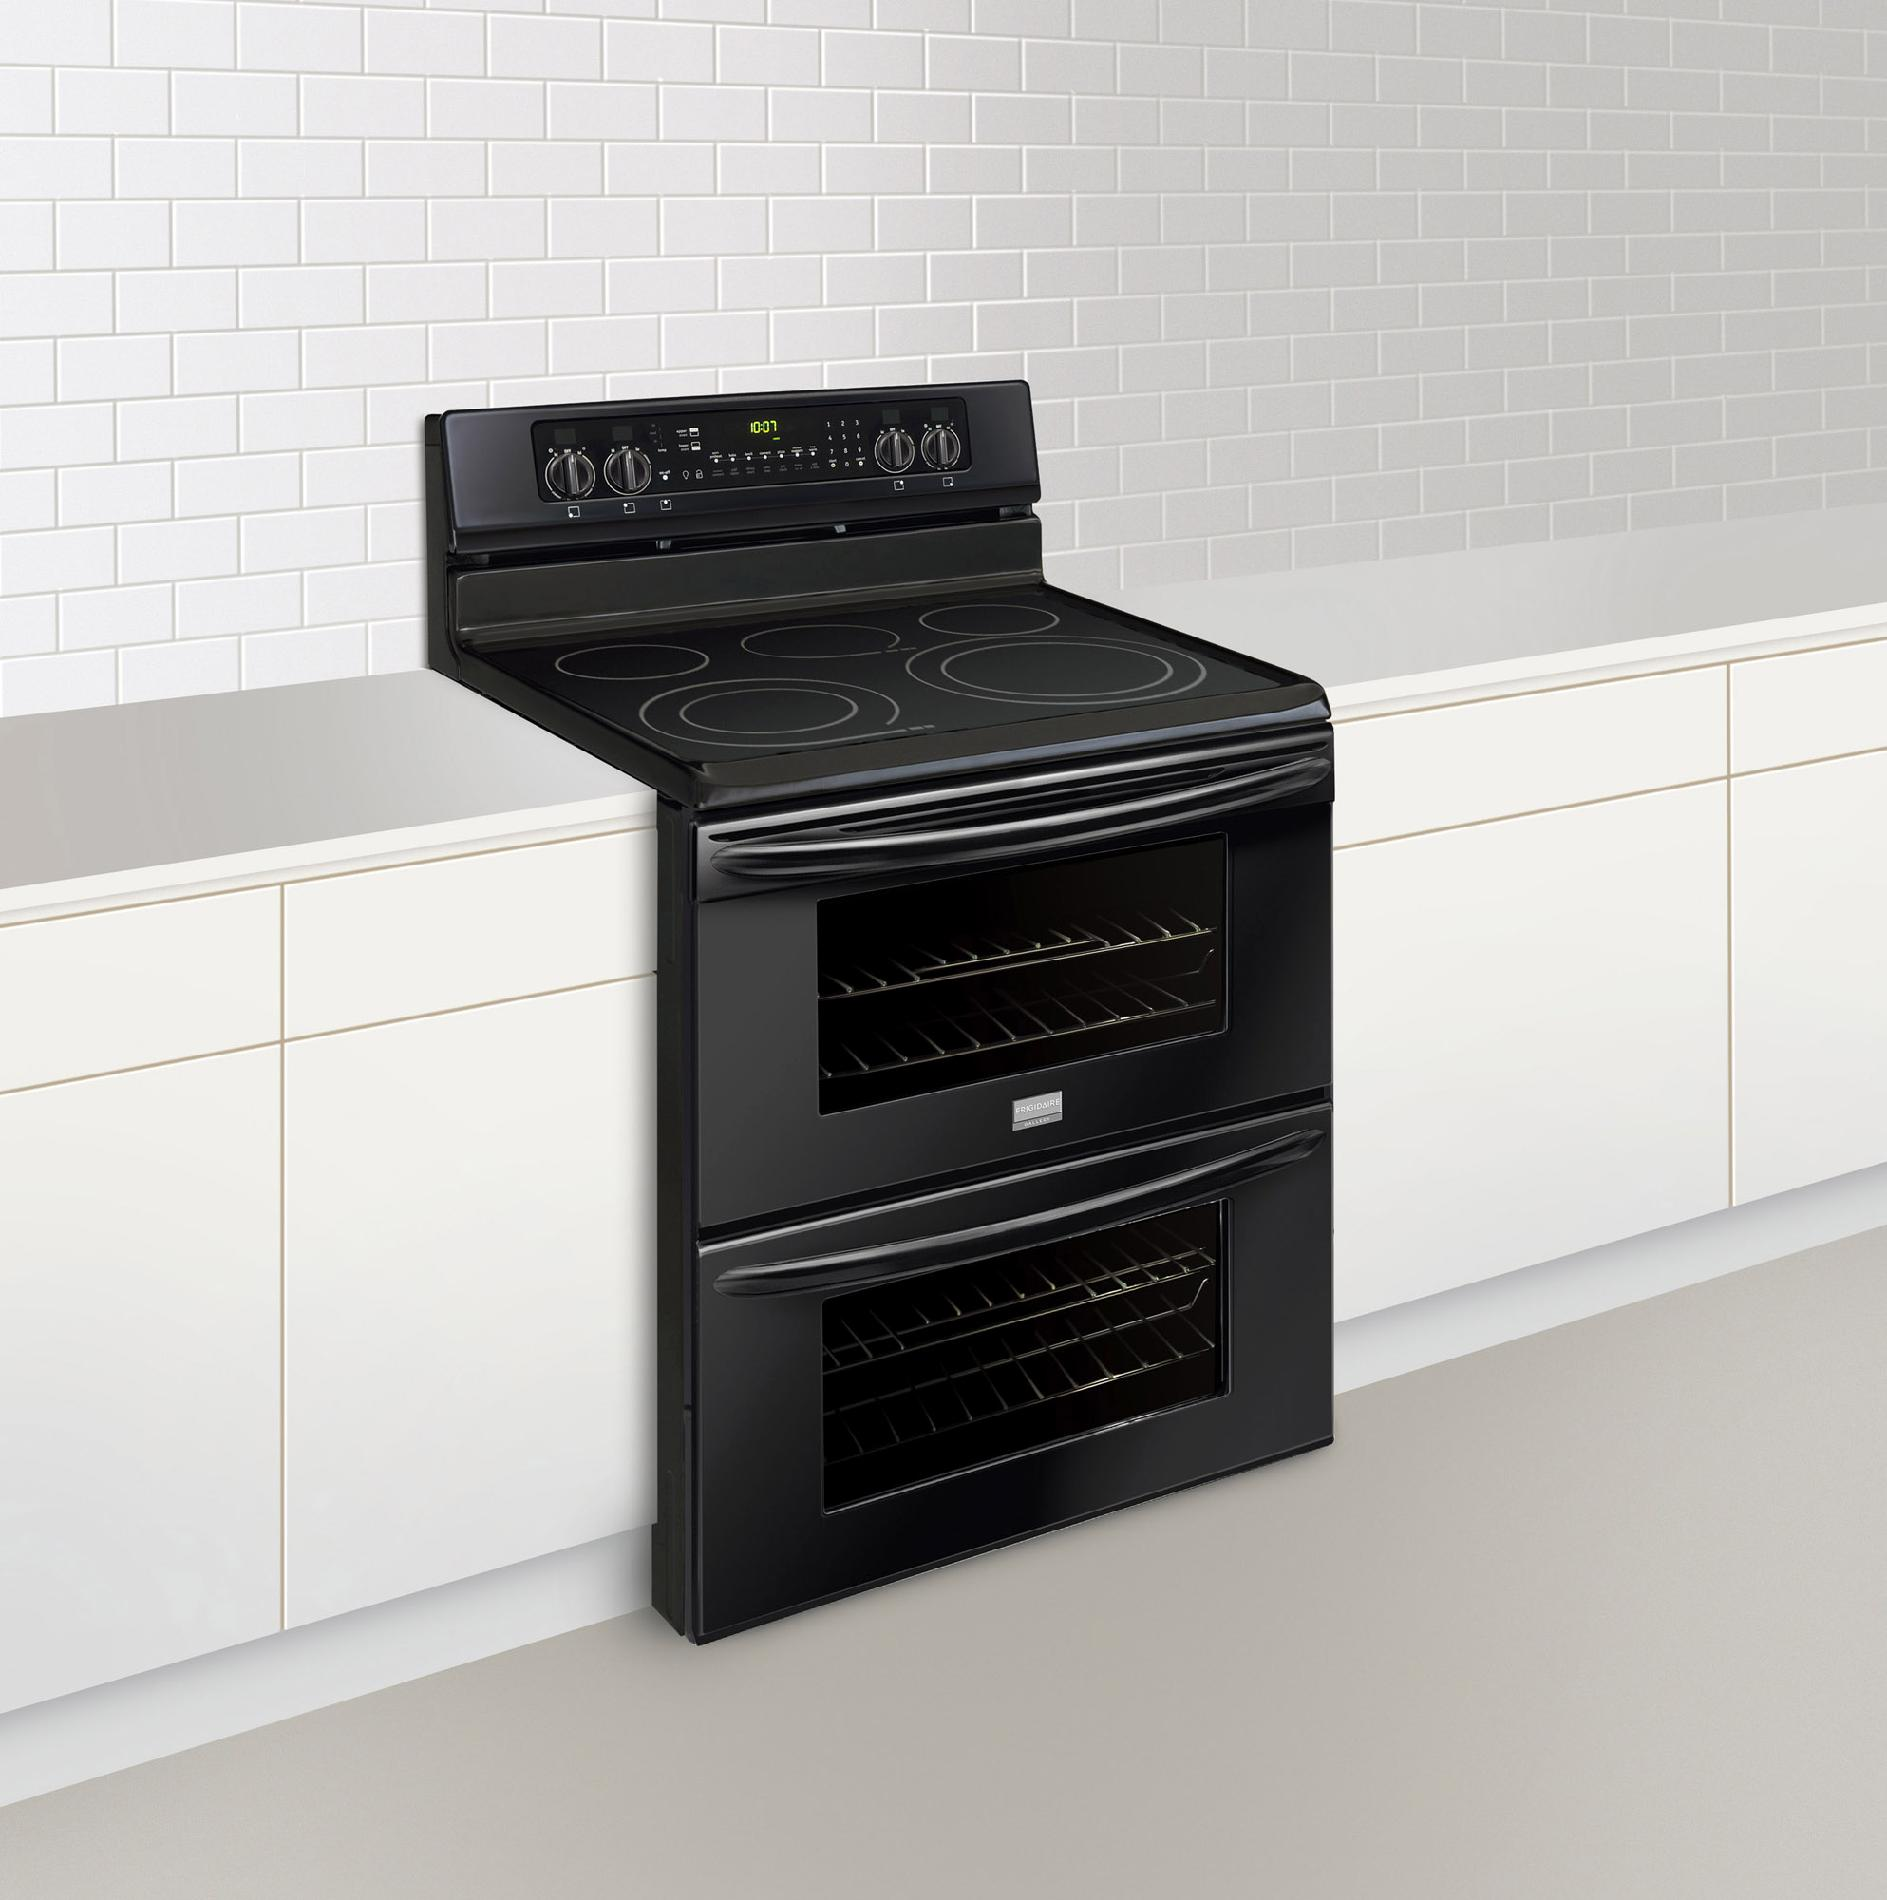 Frigidaire Gallery 7 cu. ft. Double-Oven Electric Range - Black